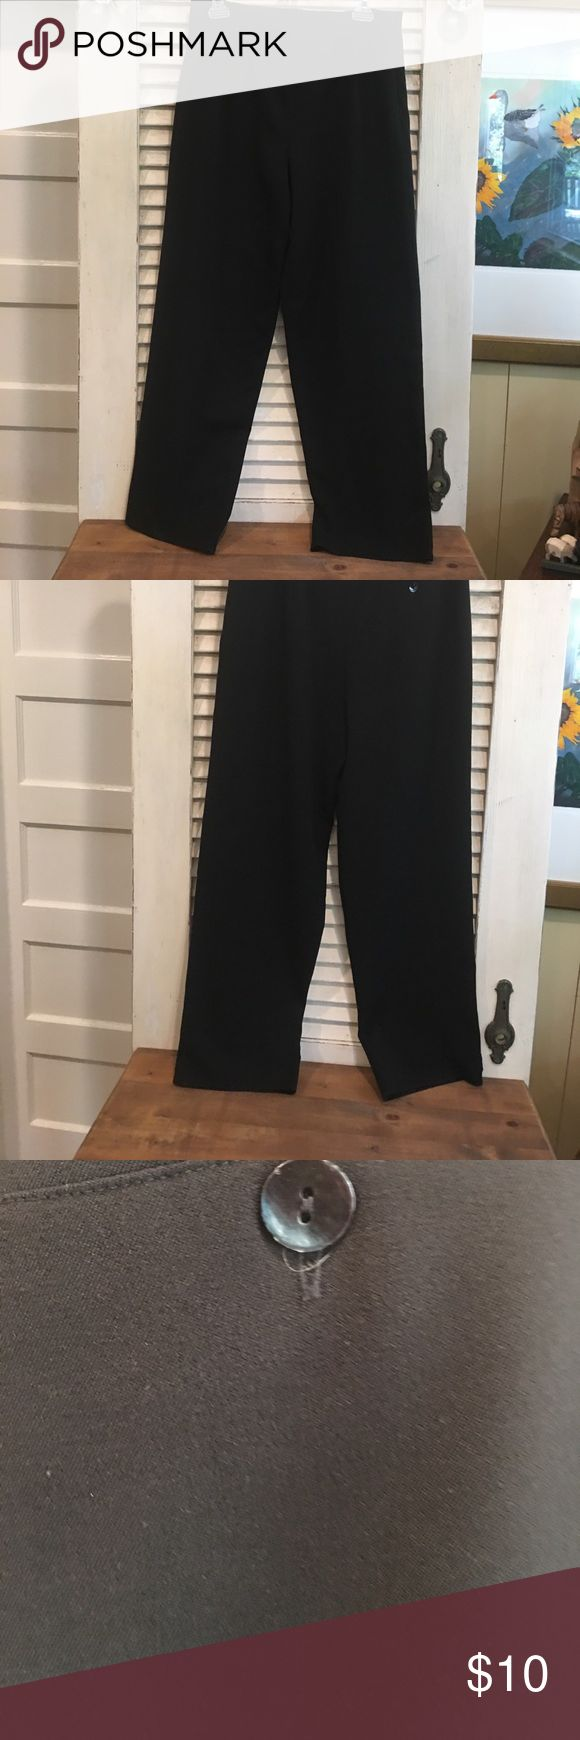 "Ladies Chicos size one dress pants Ladies Chicos size 1 dress pants,  color is black, inseam is 28 inches, bottom of the pant leg is 9""wide, in good used condition. Has hidden side zipper Chicos Pants Trousers"